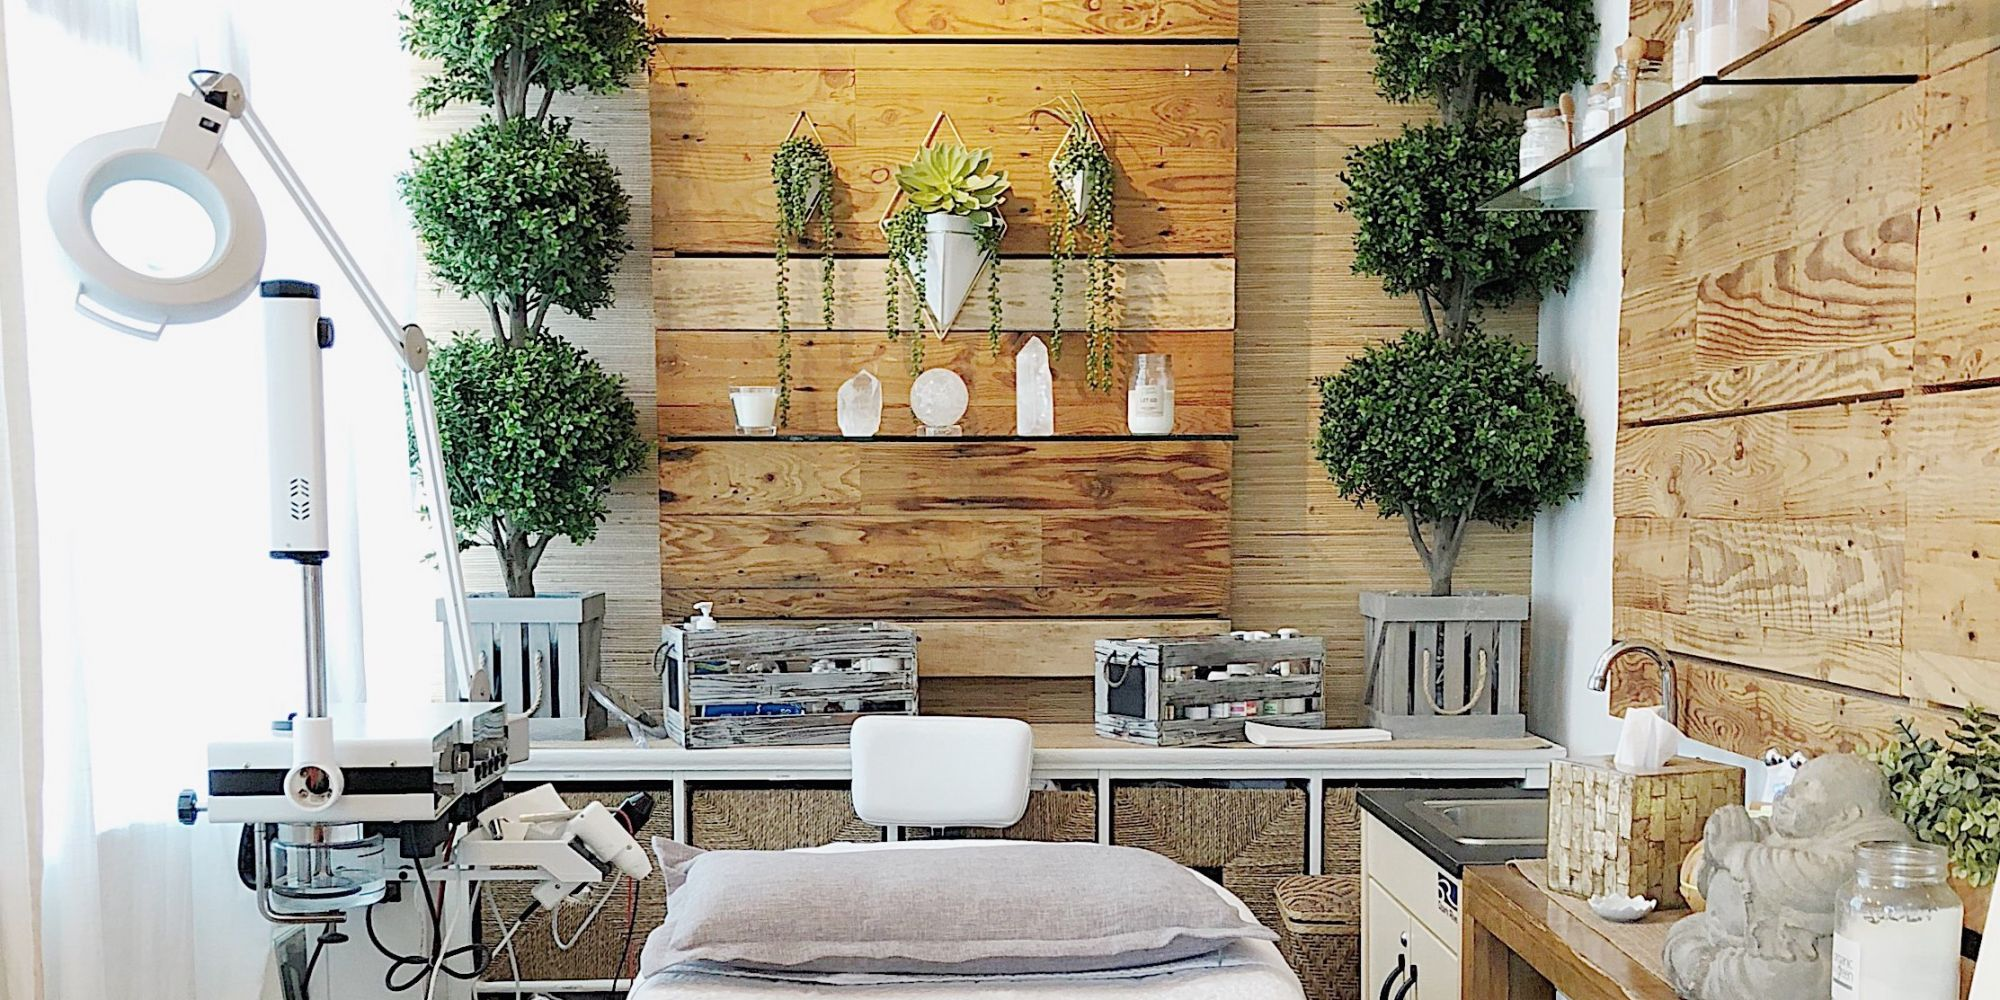 Organic To Green's Rianna Loving Returns To The Brick-And-Mortar Business In Santa Monica With New Spa